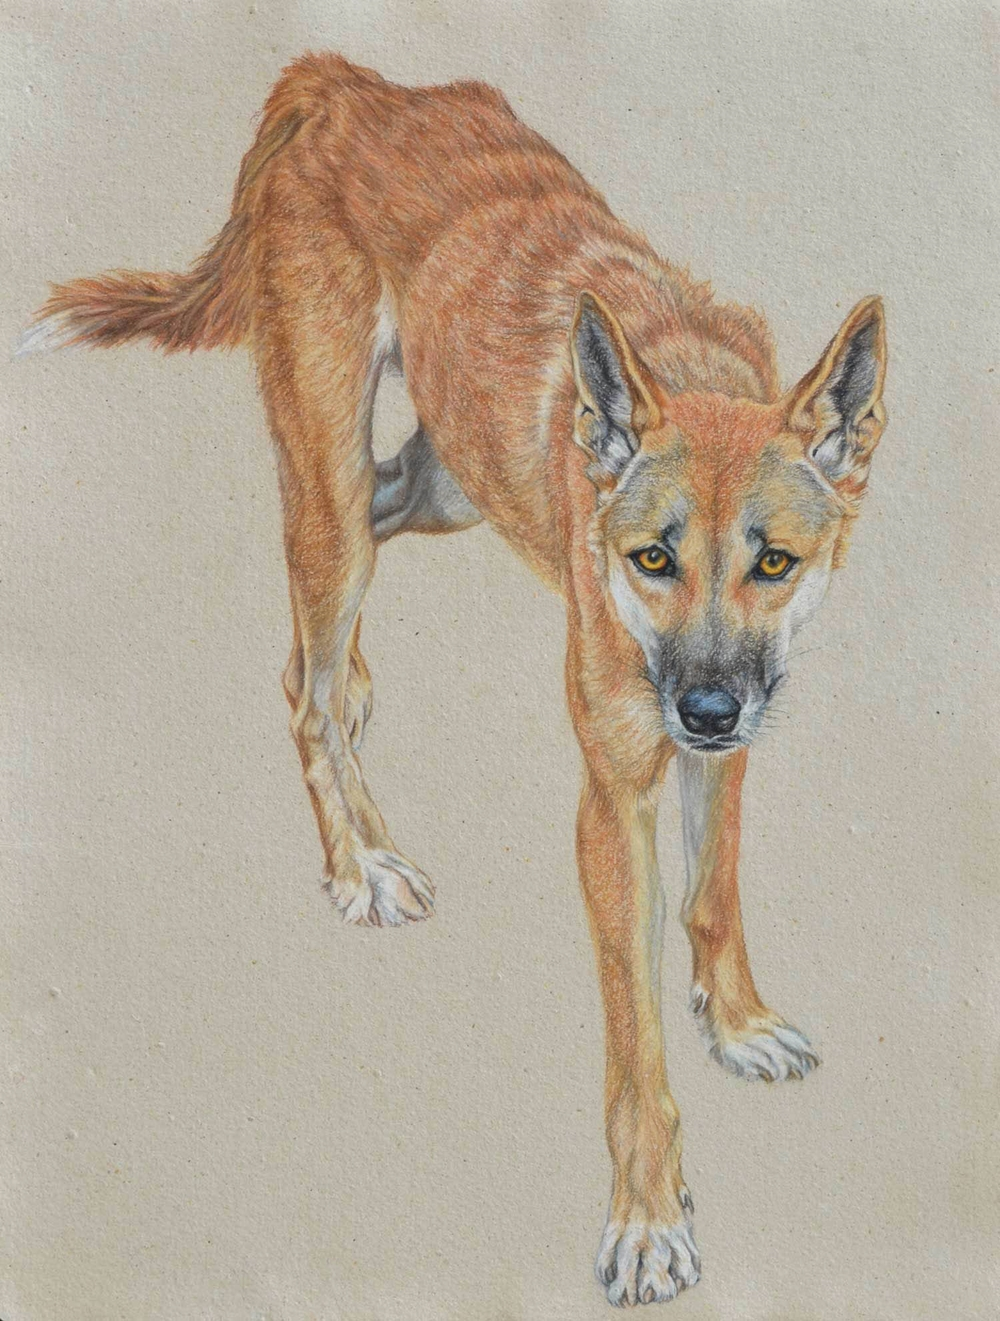 DINGO II  61 X 41 CM, .PASTEL ON HANDMADE PAPER $3,750  Available as a limited edition print  $1,100